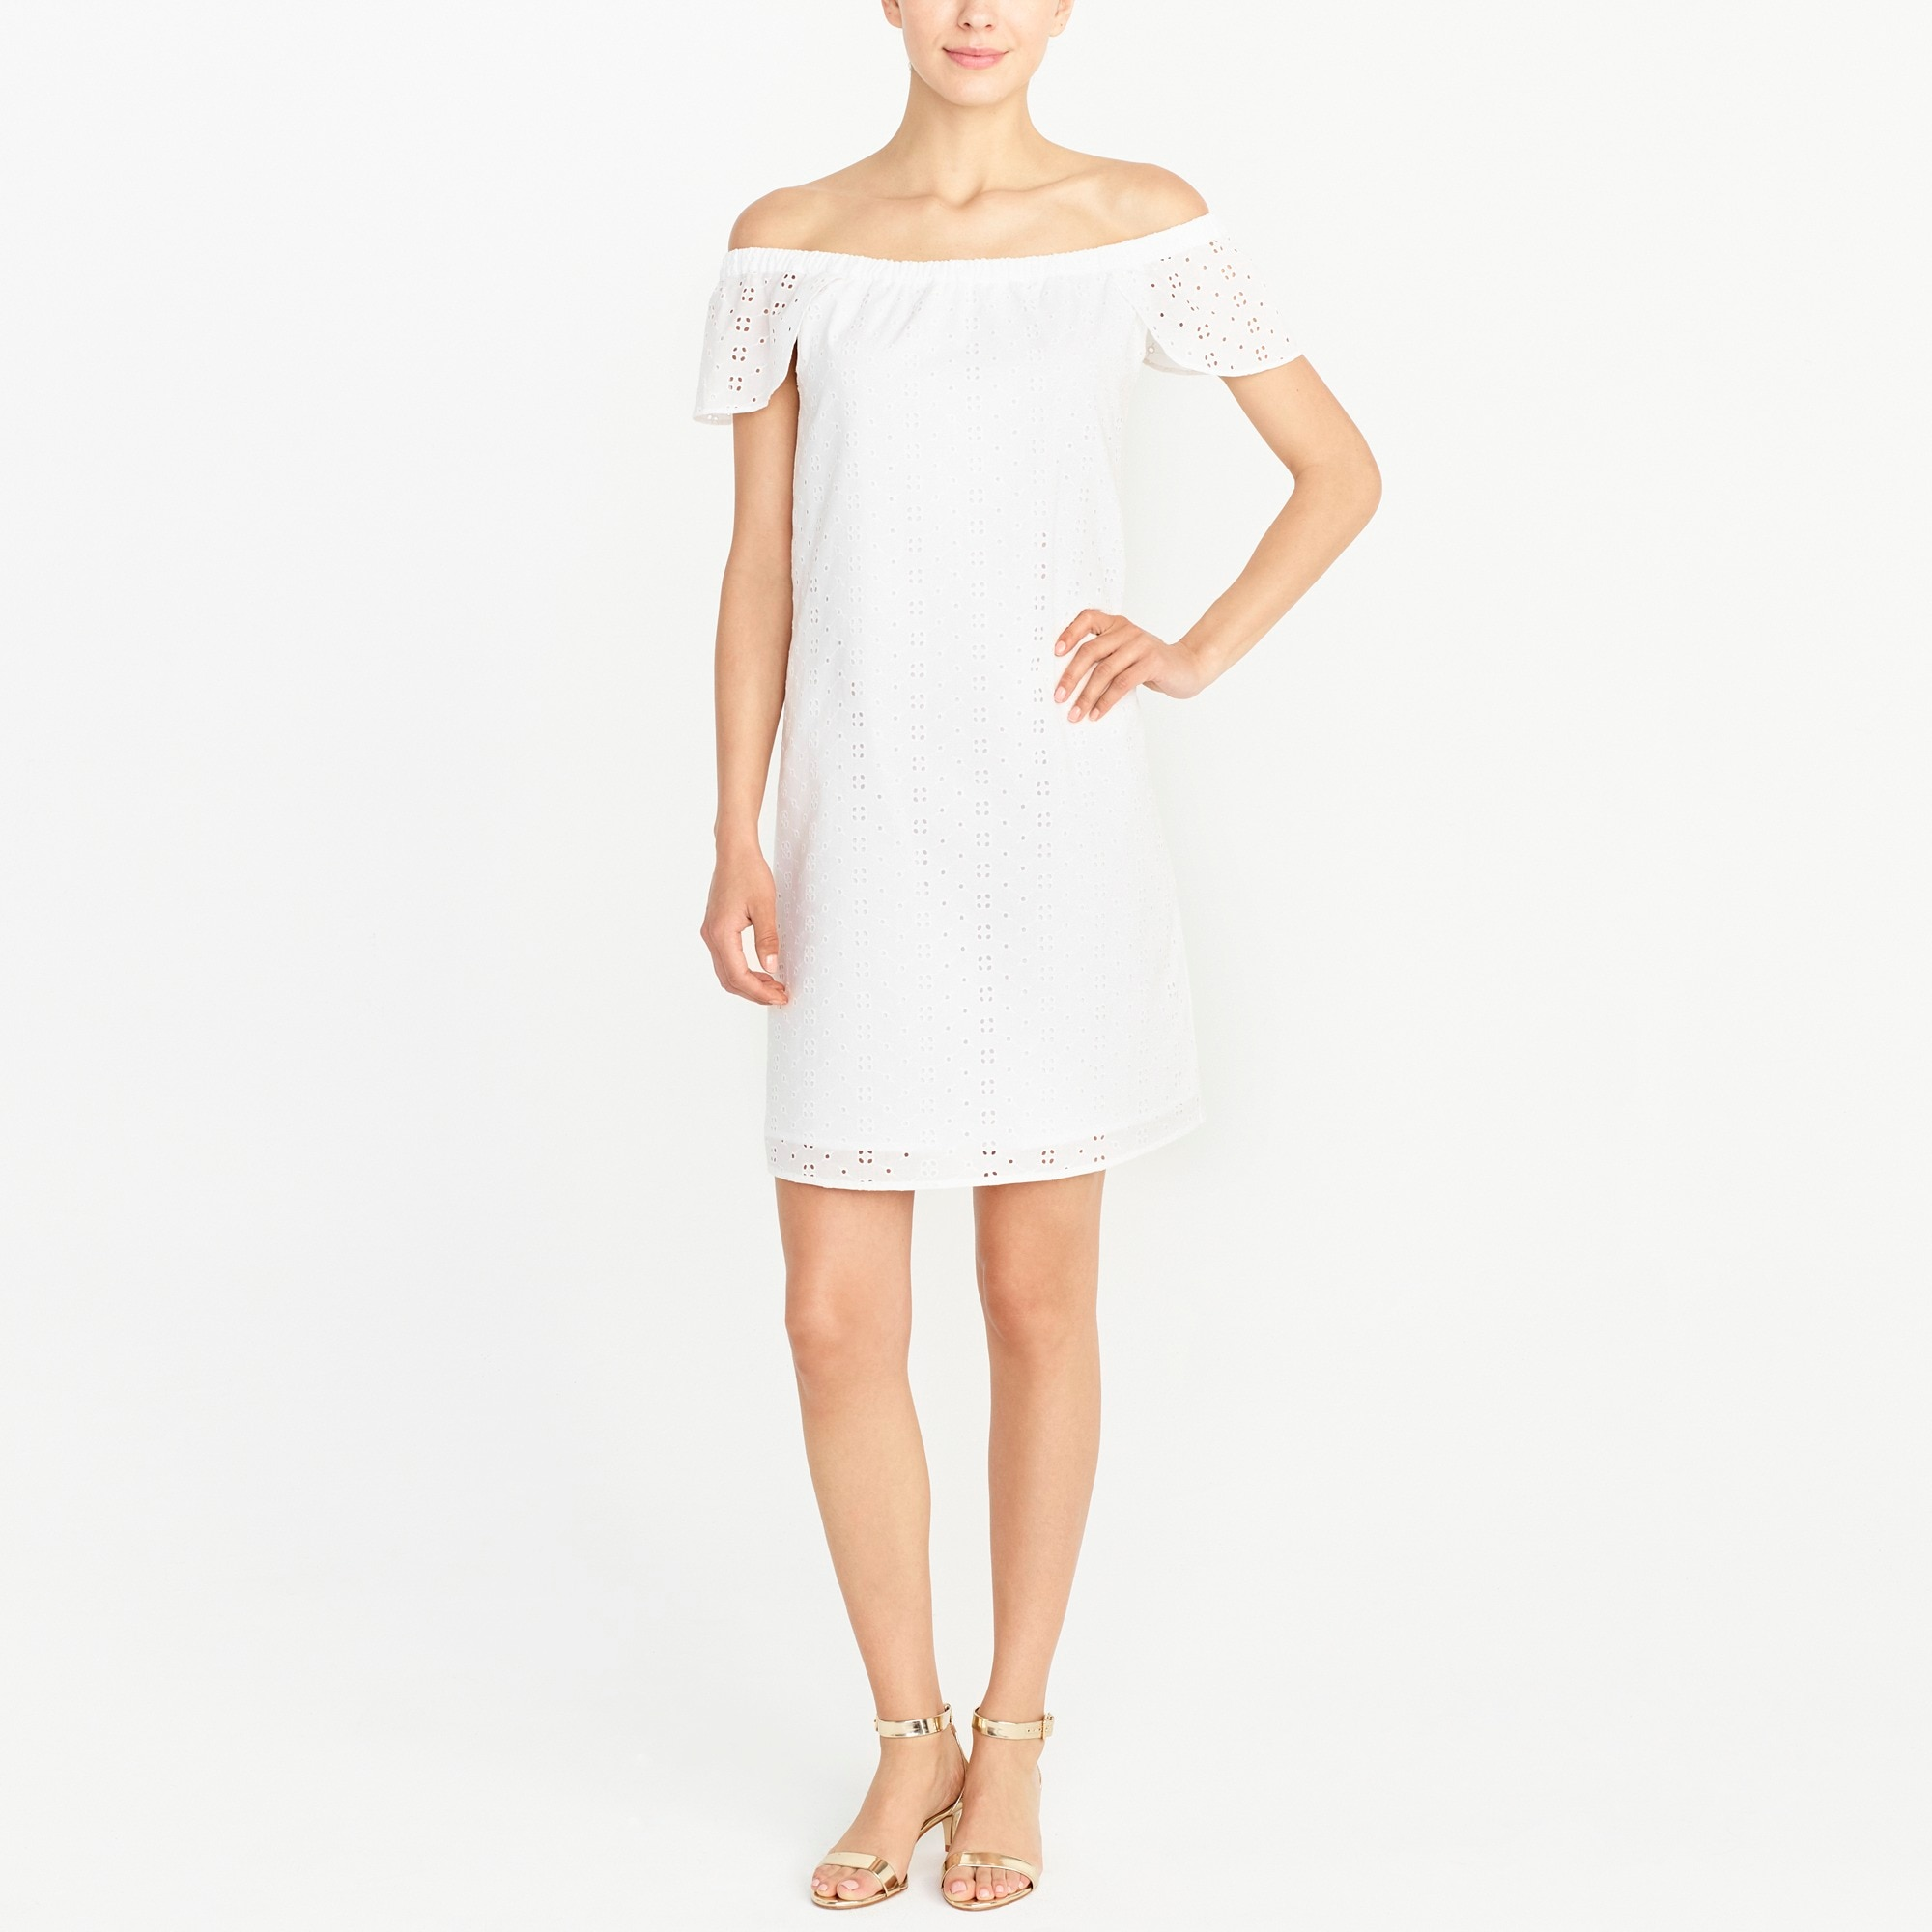 Image 1 for Eyelet off-the-shoulder dress